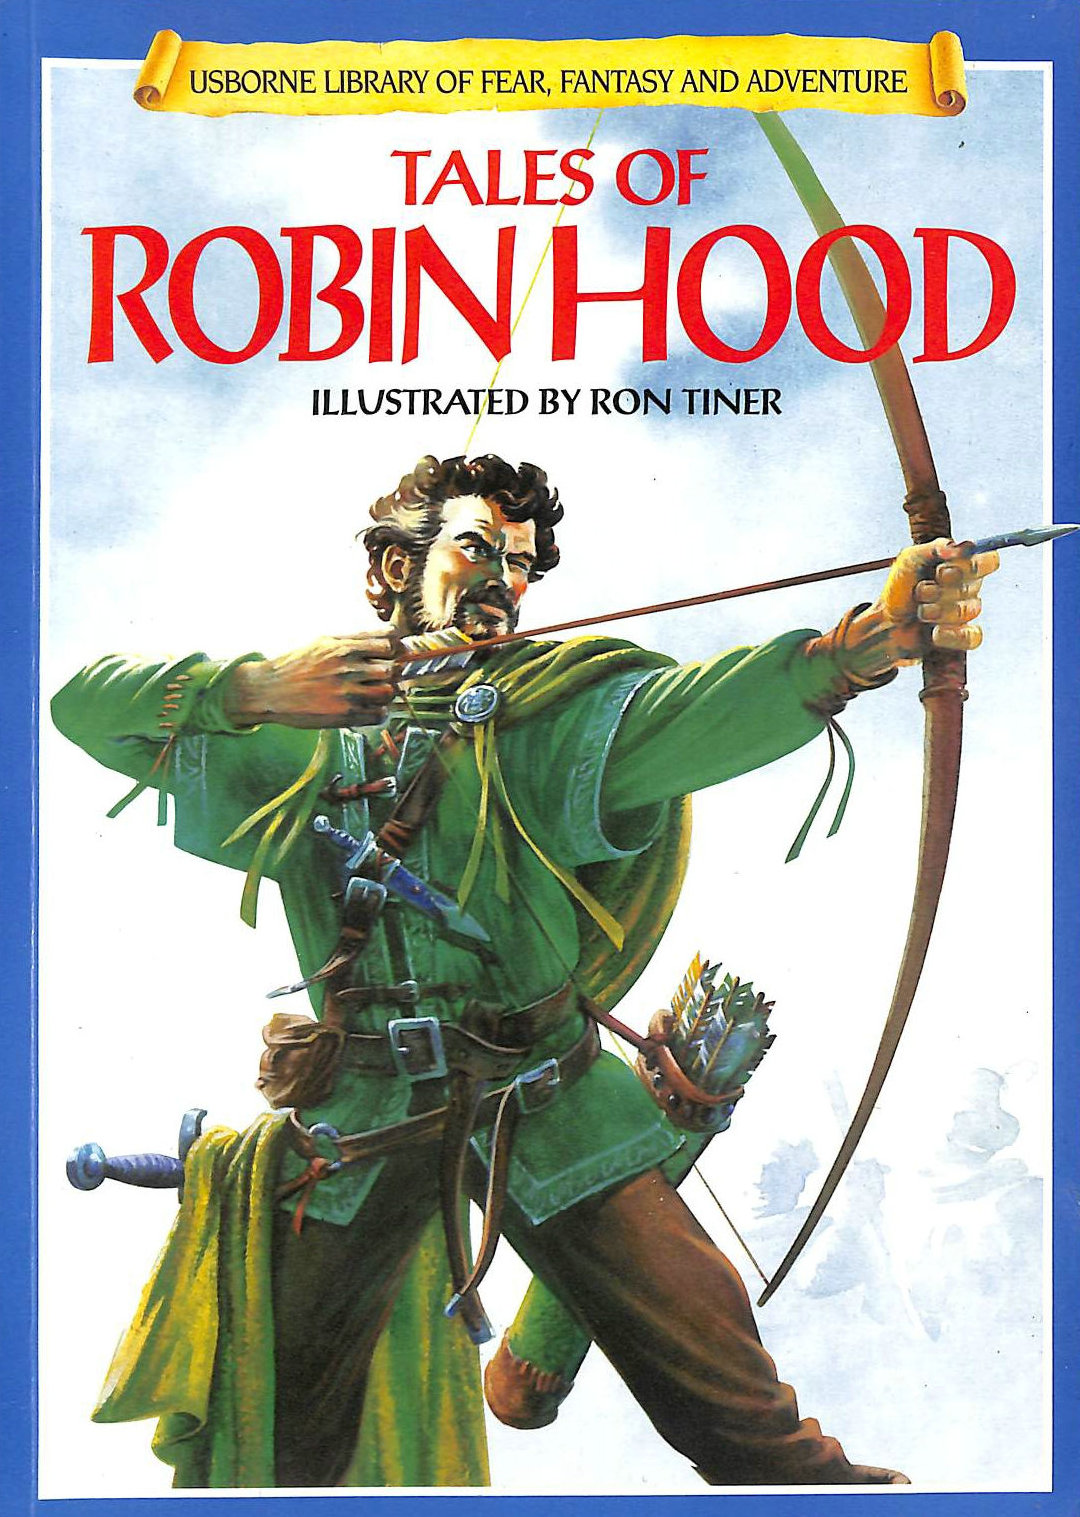 Image for Tales of Robin Hood (Usborne Library of Fear, Fantasy and Adventure S.)